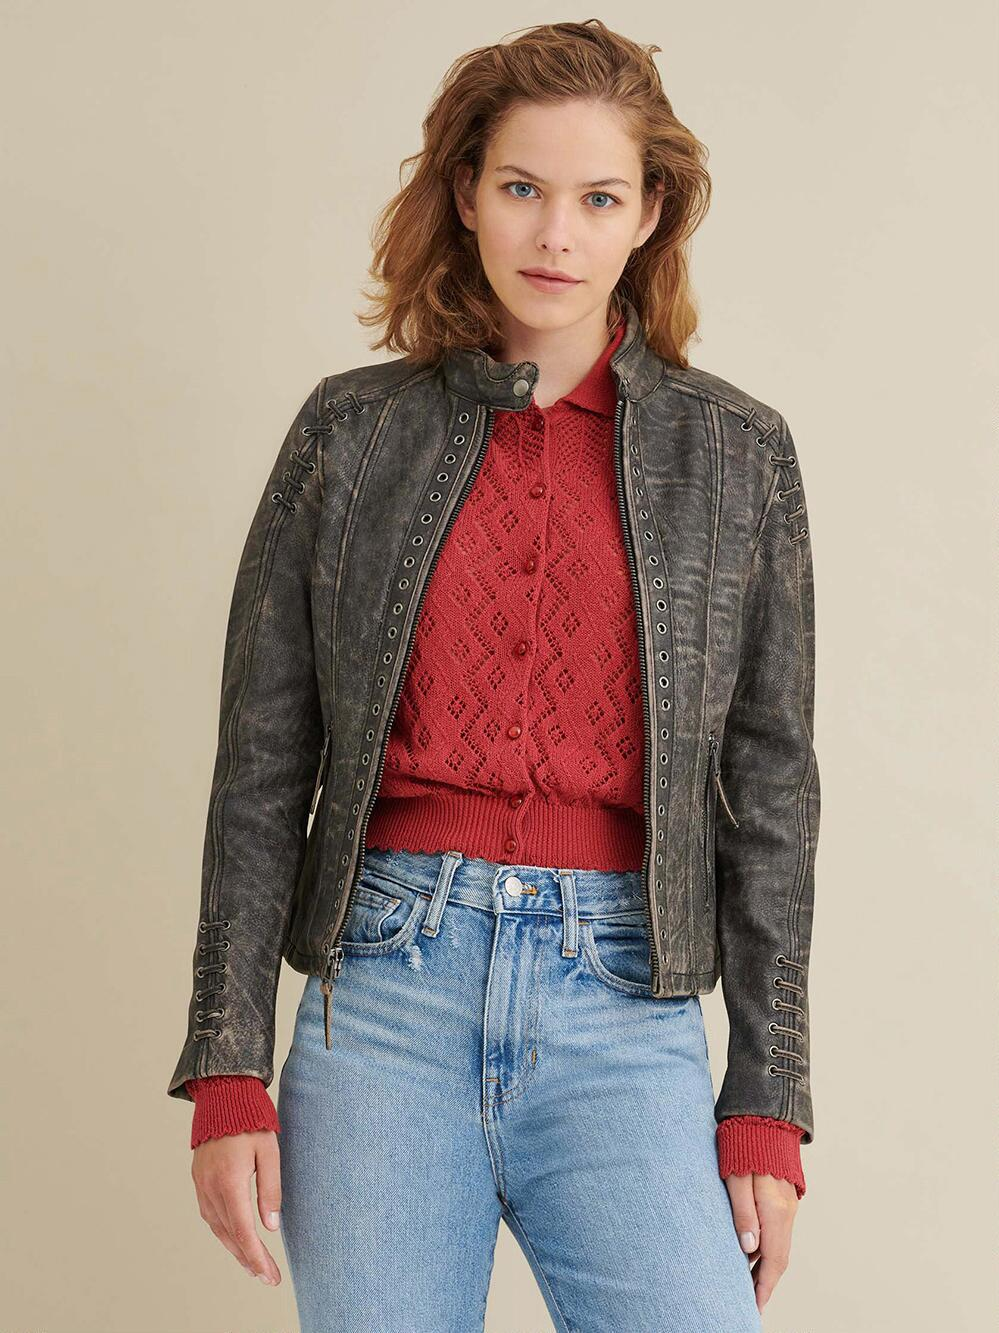 Distressed Leather Jacket for Women